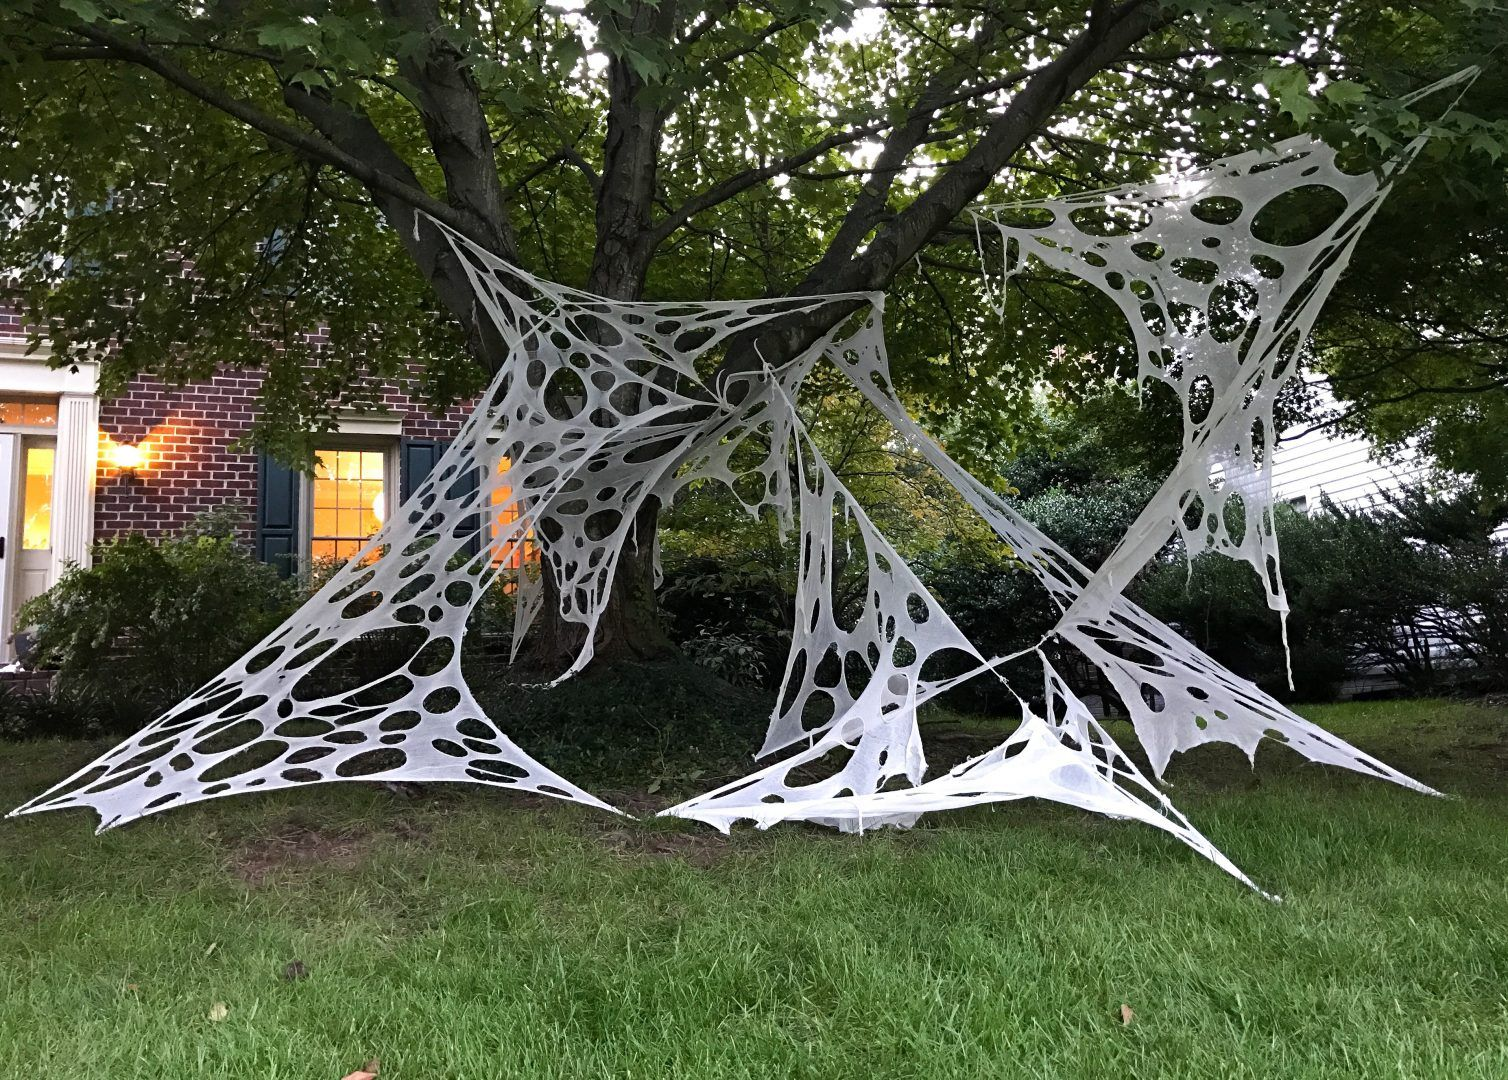 How To Make Giant Halloween Spider Webs